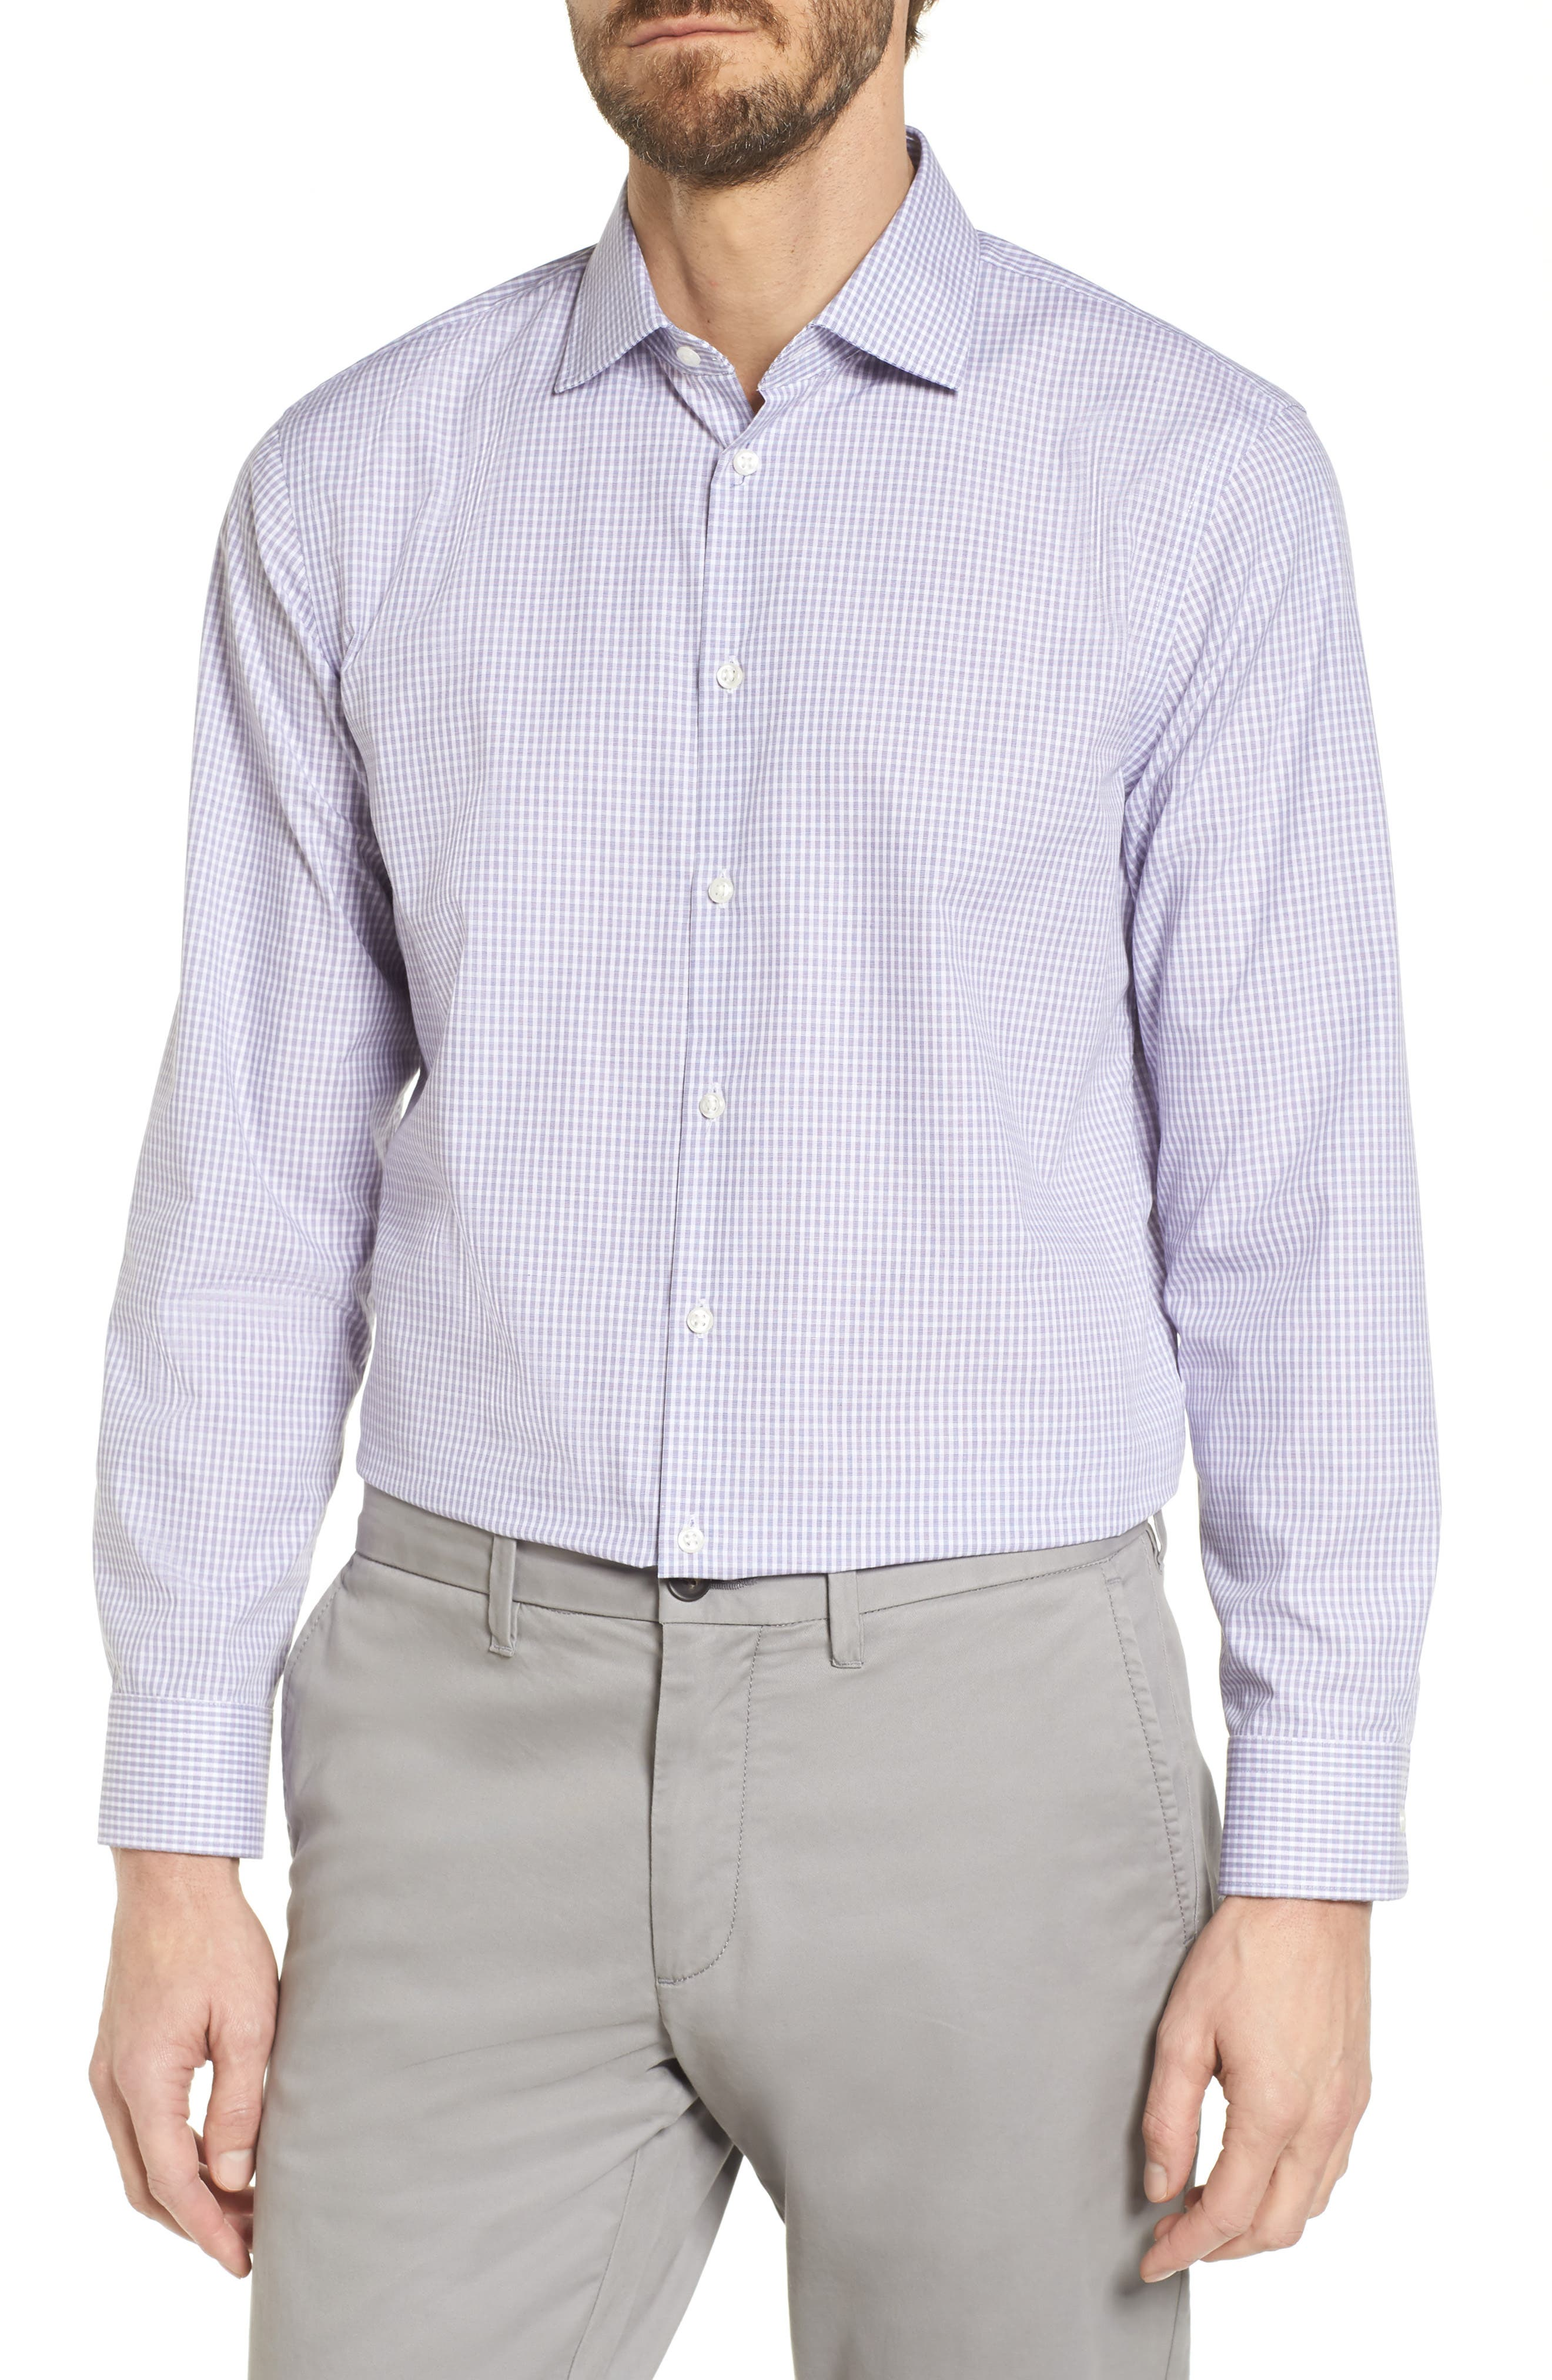 Main Image - Nordstrom Men's Shop Extra Trim Fit Non-Iron Check Dress Shirt